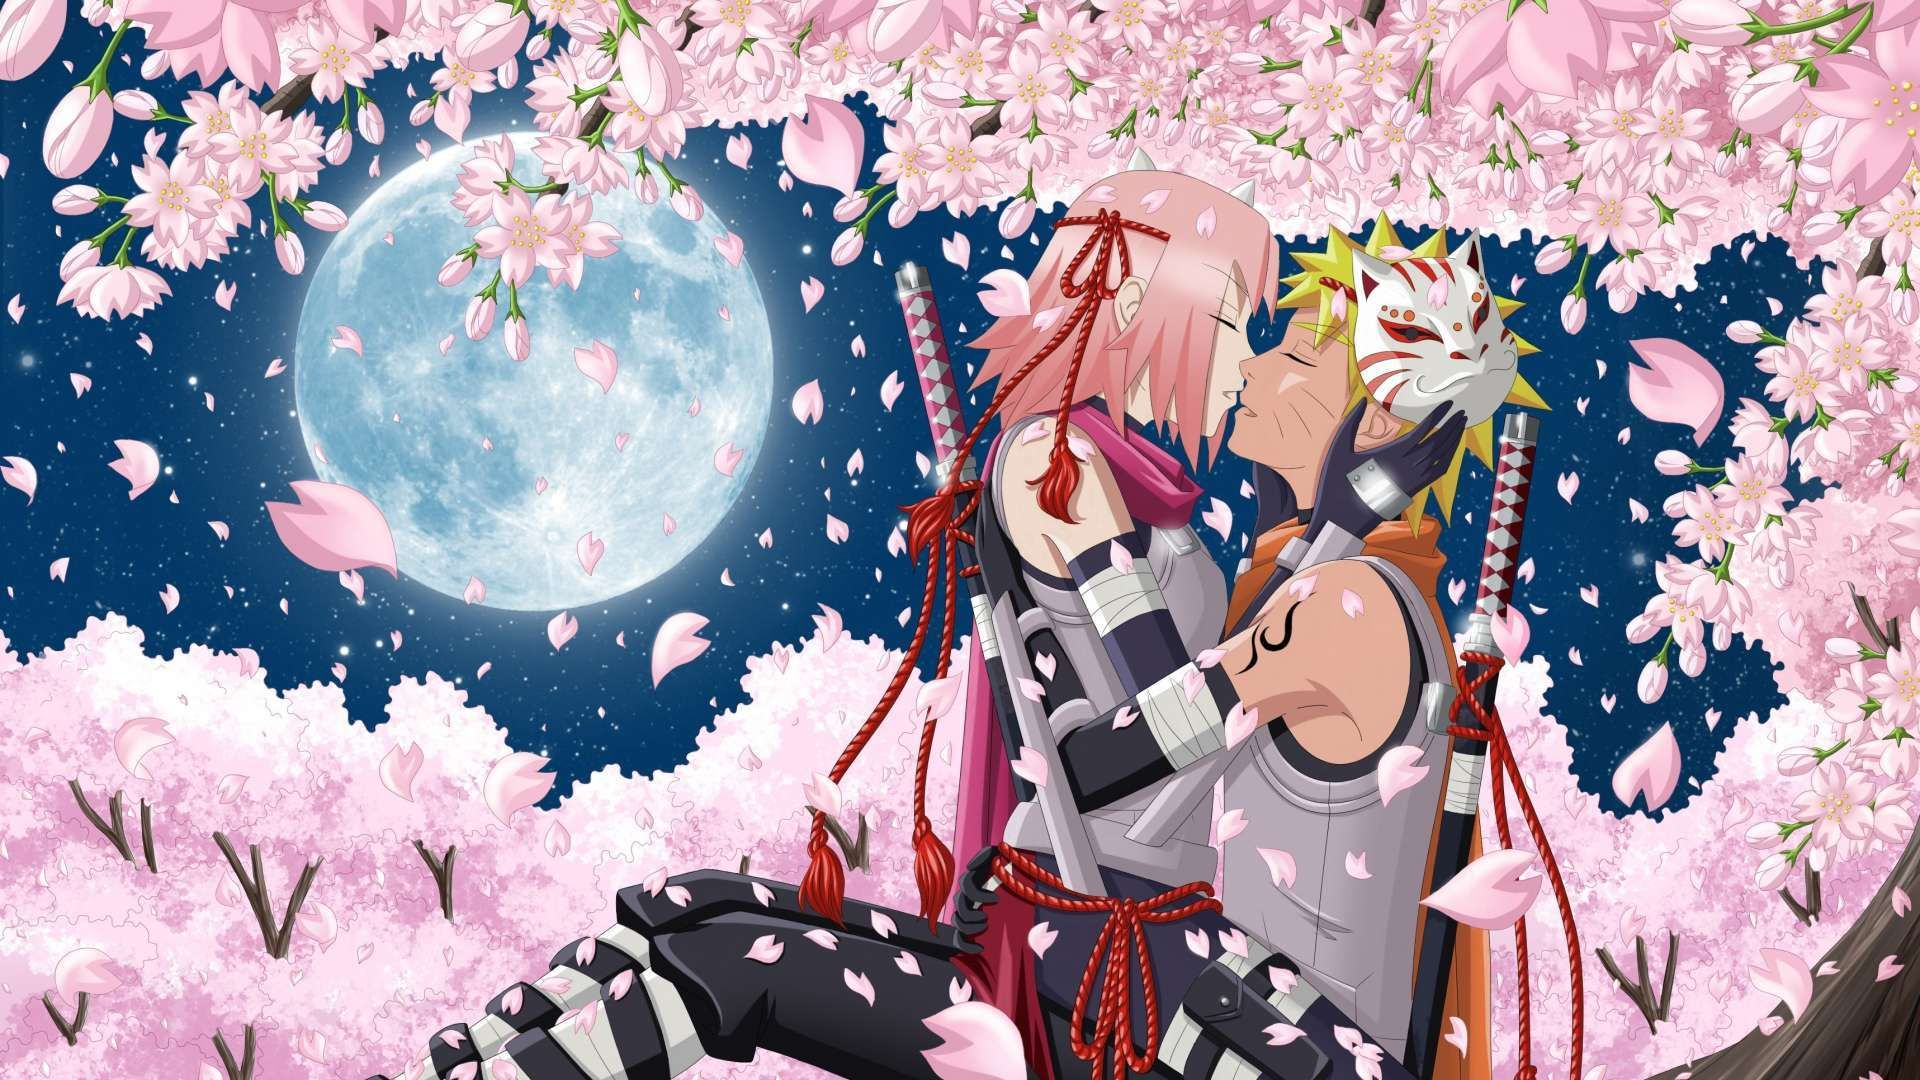 24 Anime Cherry Blossom Wallpapers Wallpaperboat